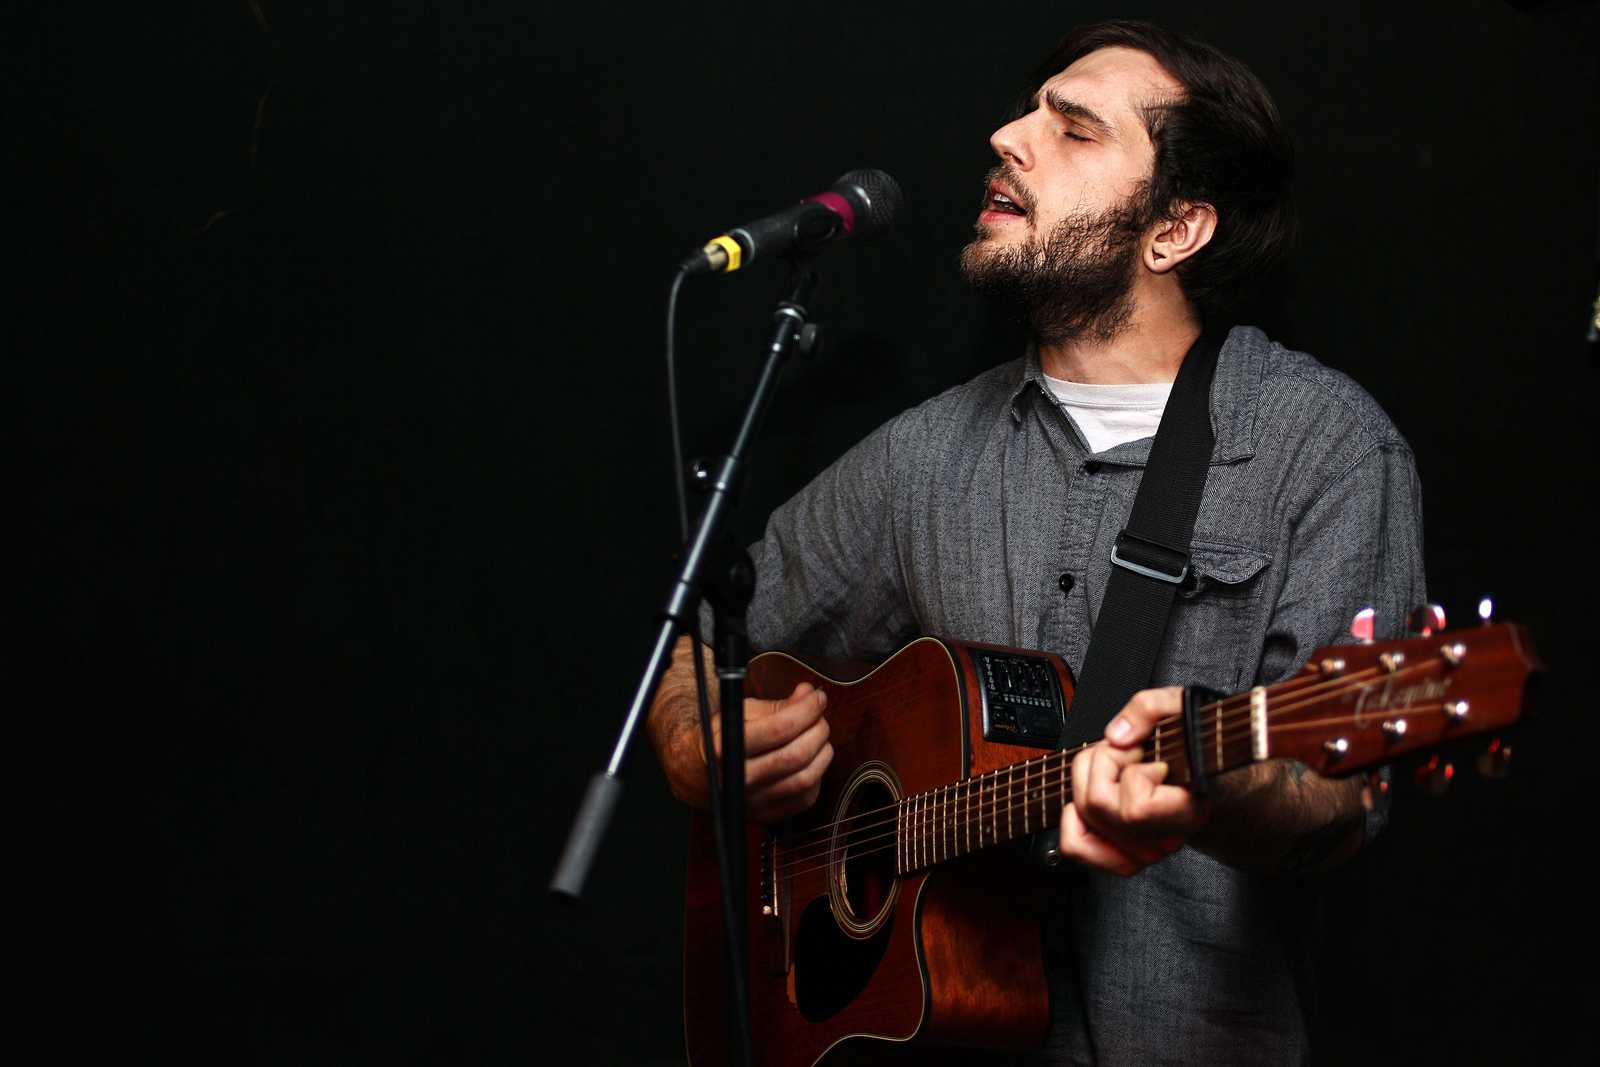 Derek Schultz of Owl Paws performs solo at The Depot's Strung Out acoustic show Wednesday, Oct. 23, 2013. Photo by Tony Santos / Xpress